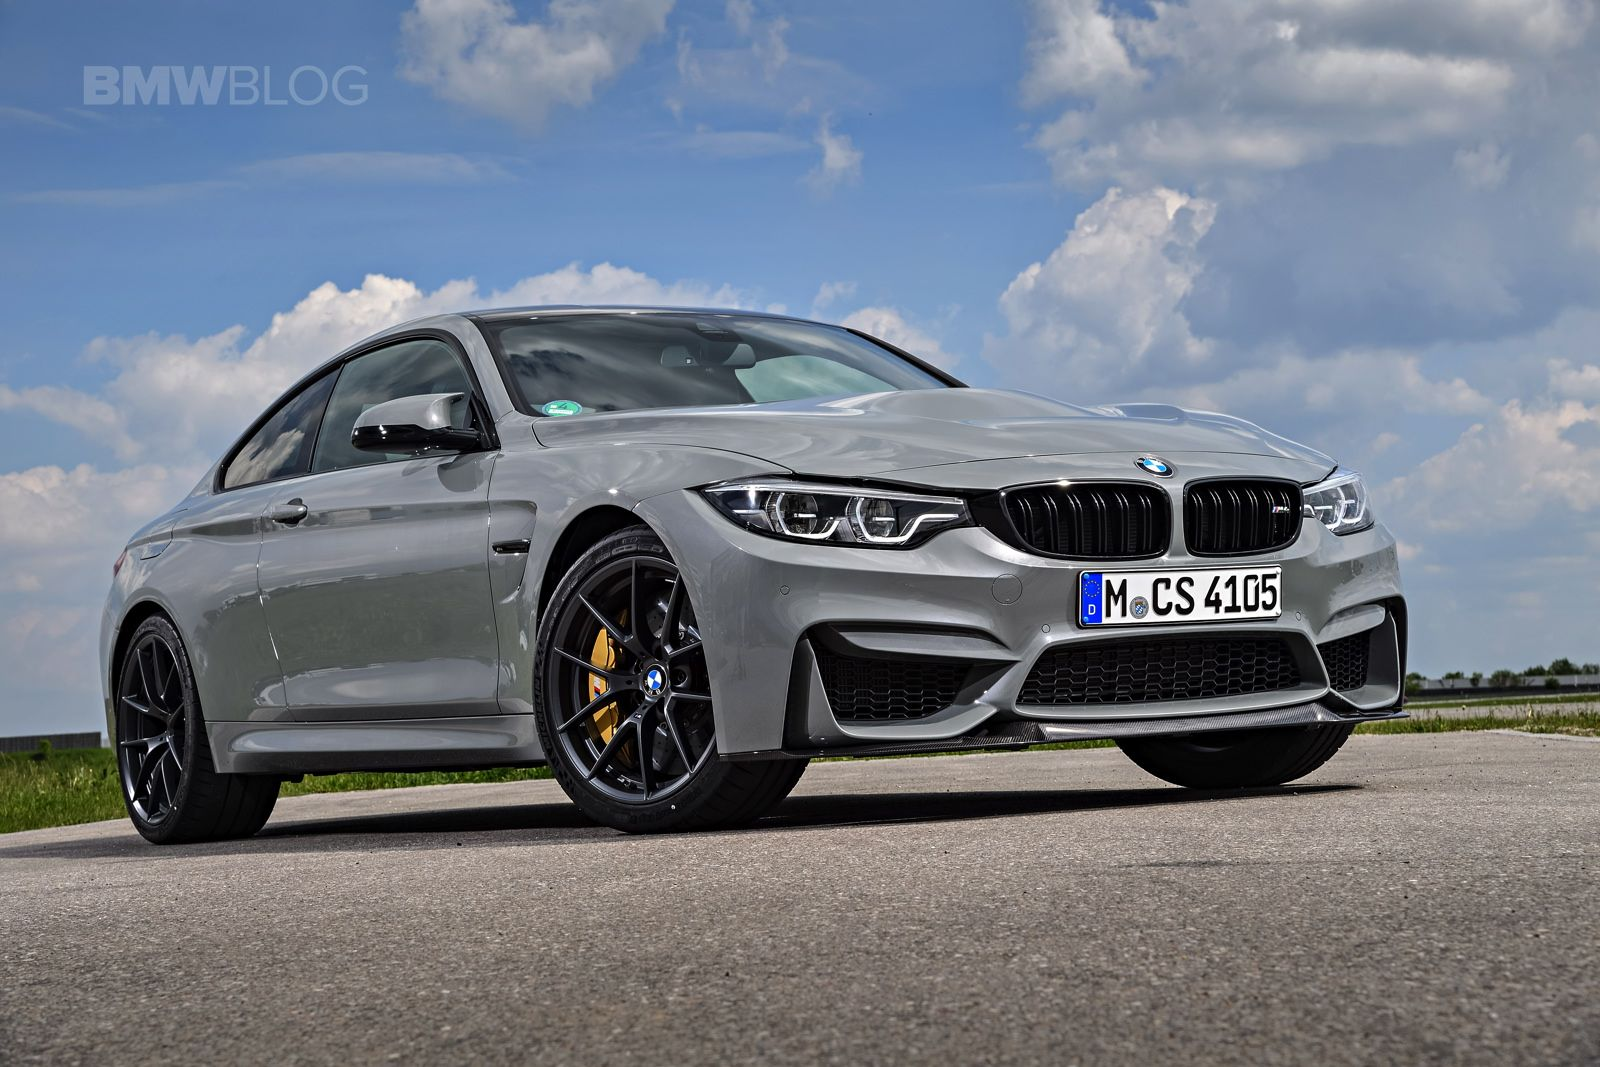 Bmw Shows Off The M4 Cs Lime Rock Grey Bmw M4 Bmw Bmw 4 Series